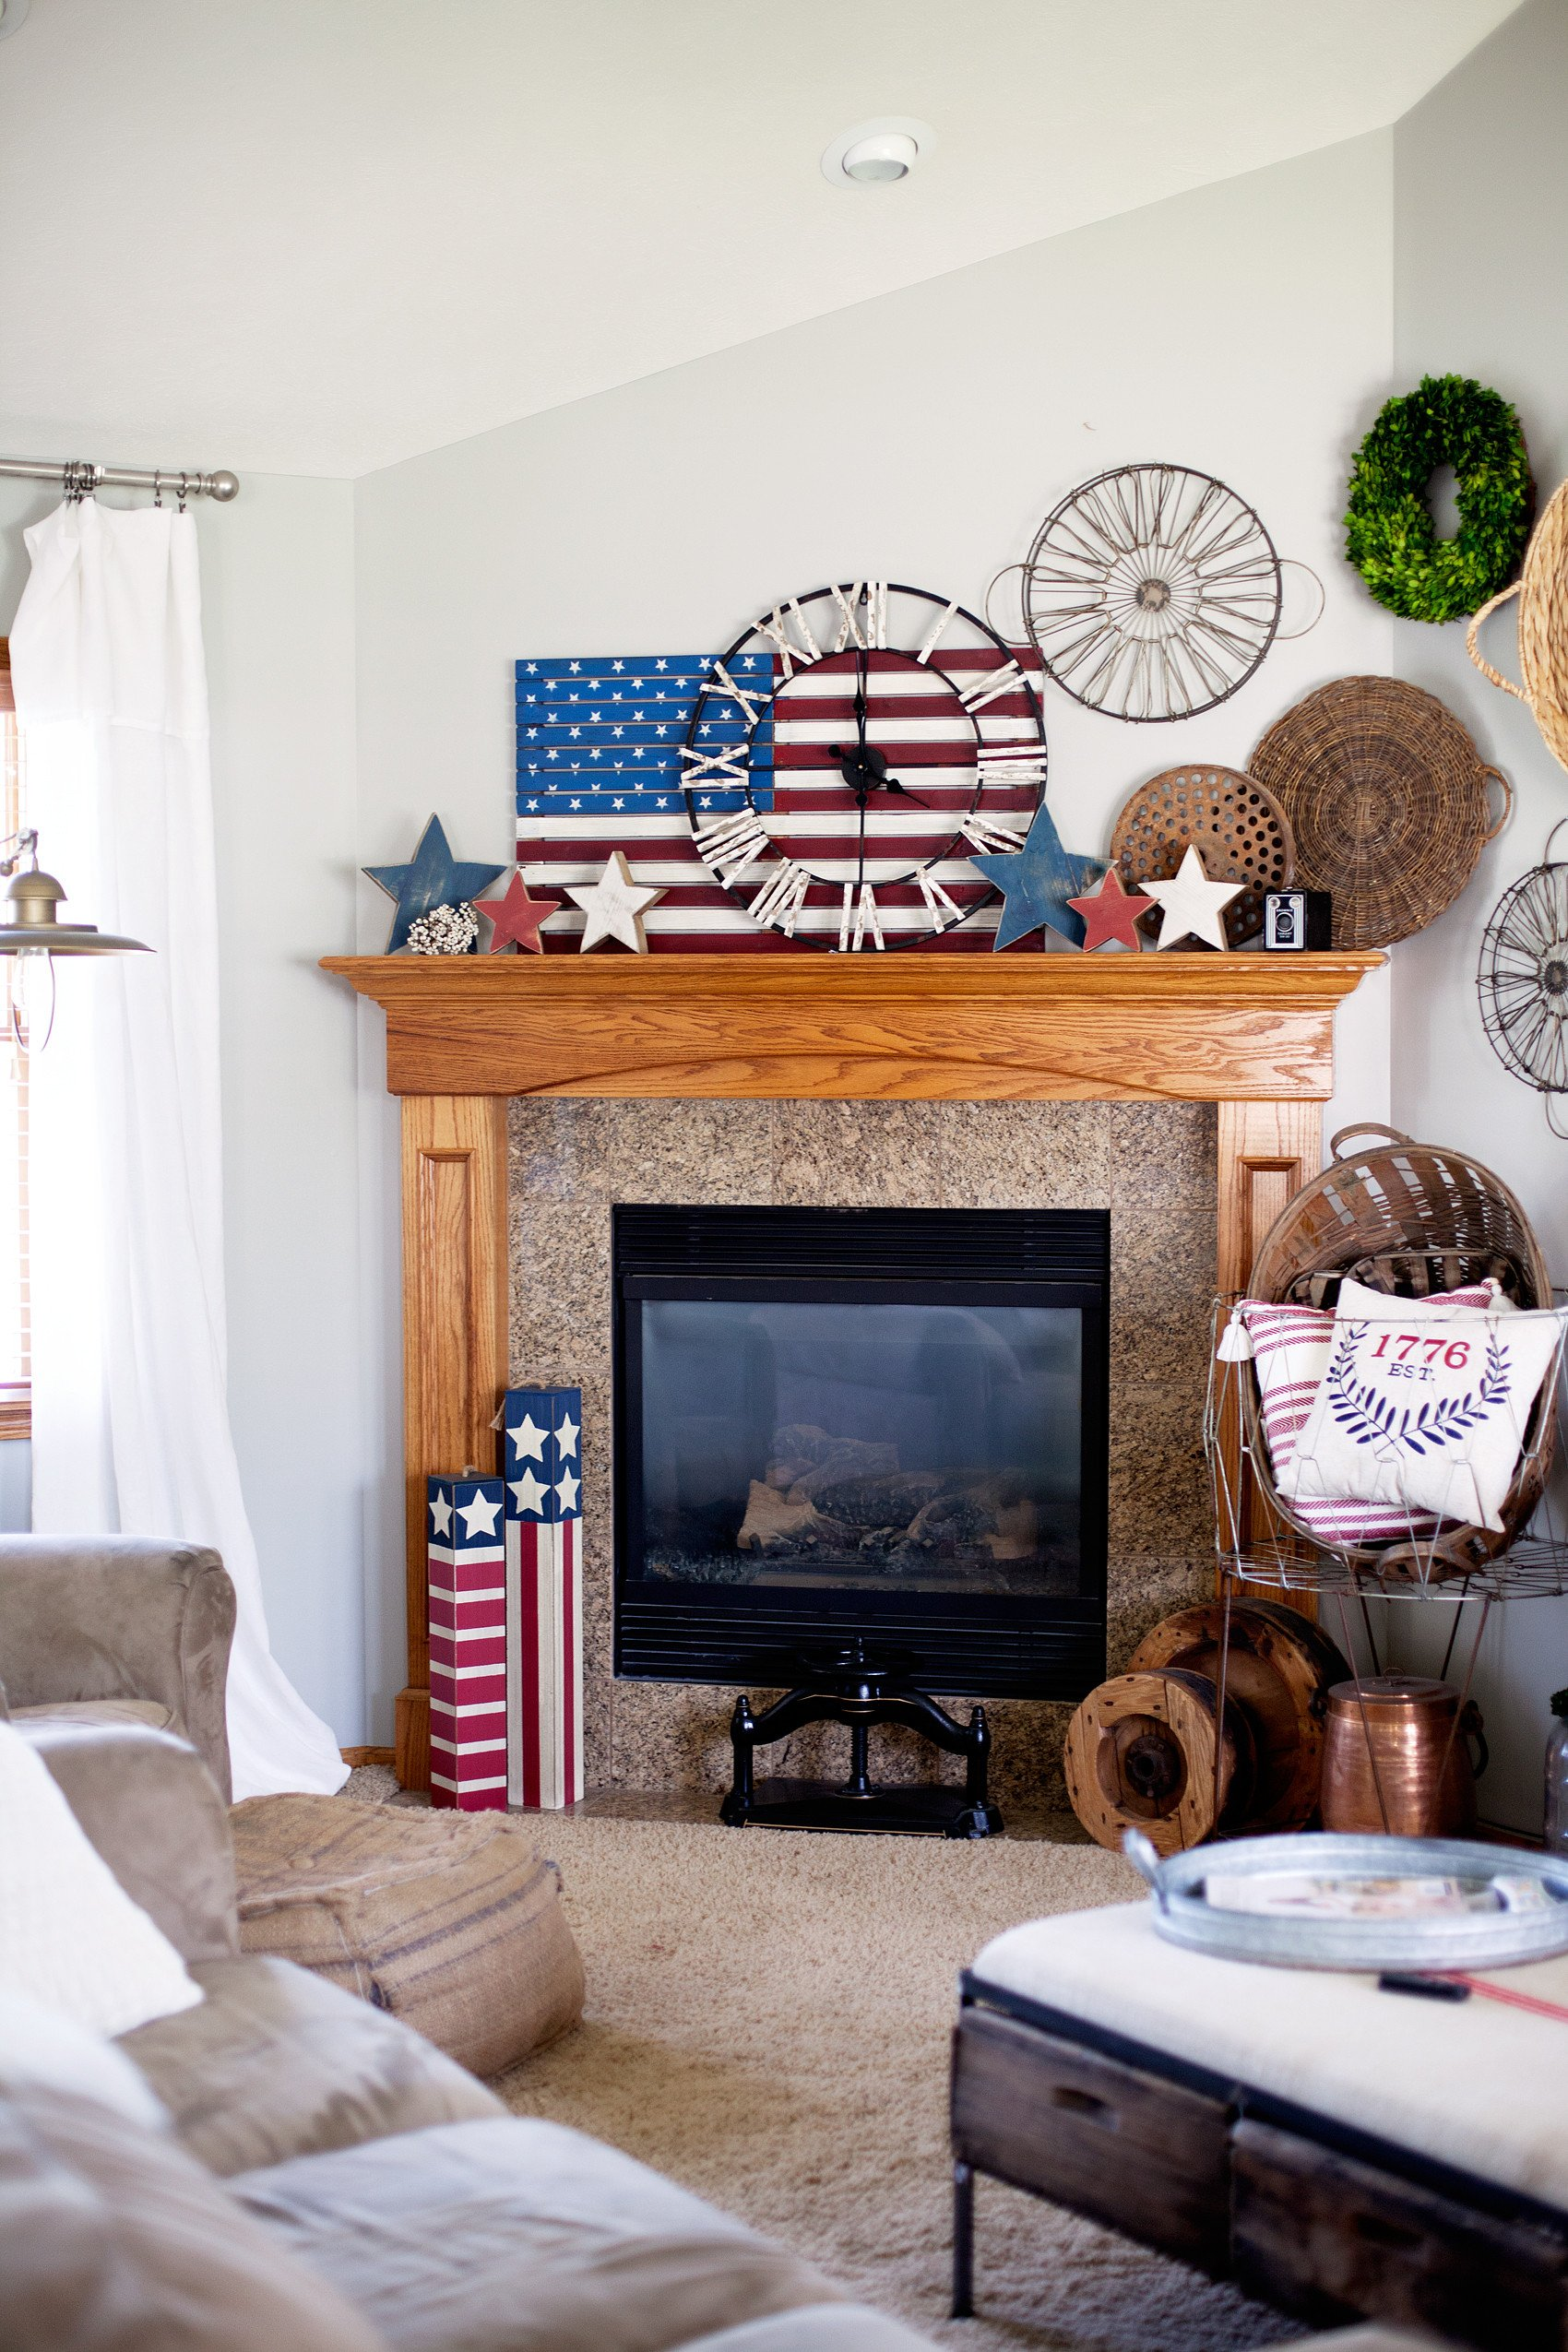 Red White and Blue Decor Inspirational Quick Red White and Blue Home Decor • Whipperberry